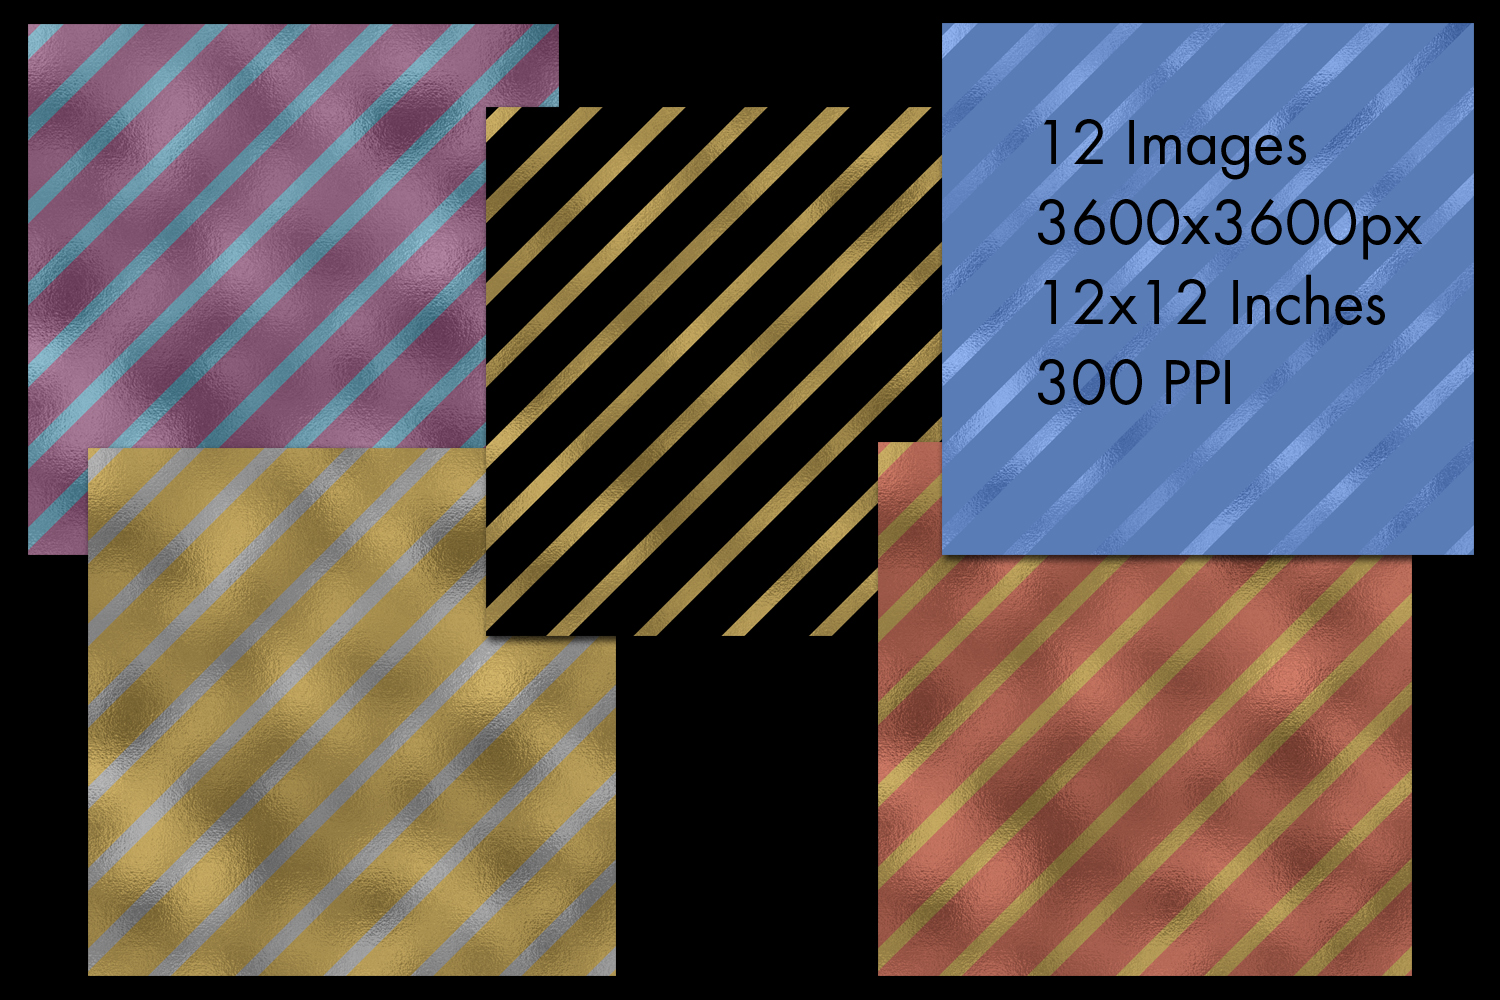 Diagonal Striped Backgrounds - 12 Image Set example image 2